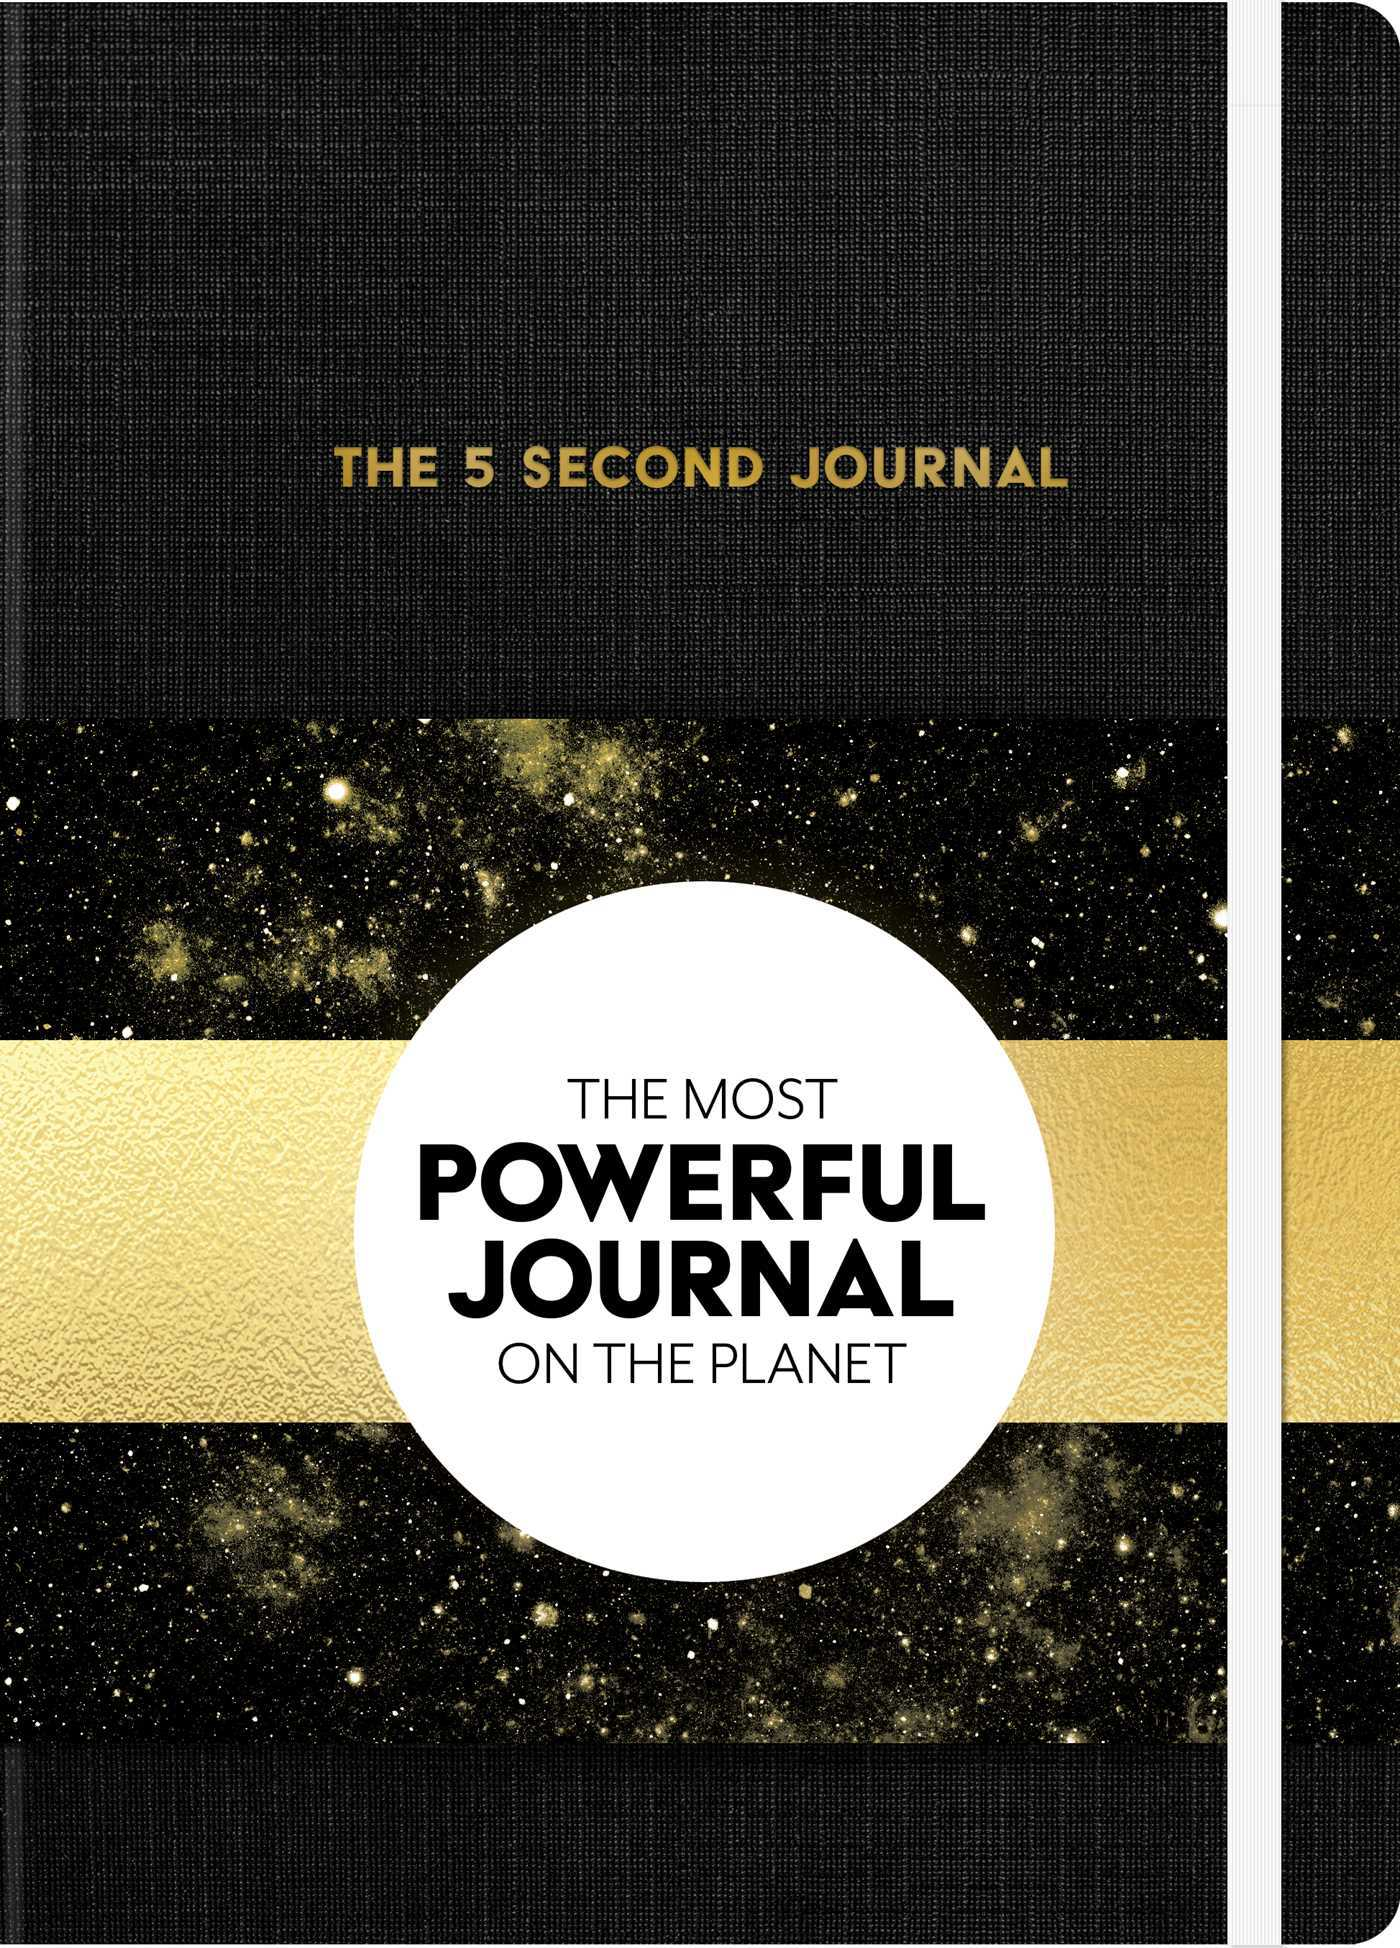 The 5 Second Journal: The Most Powerful Journal on the Planet